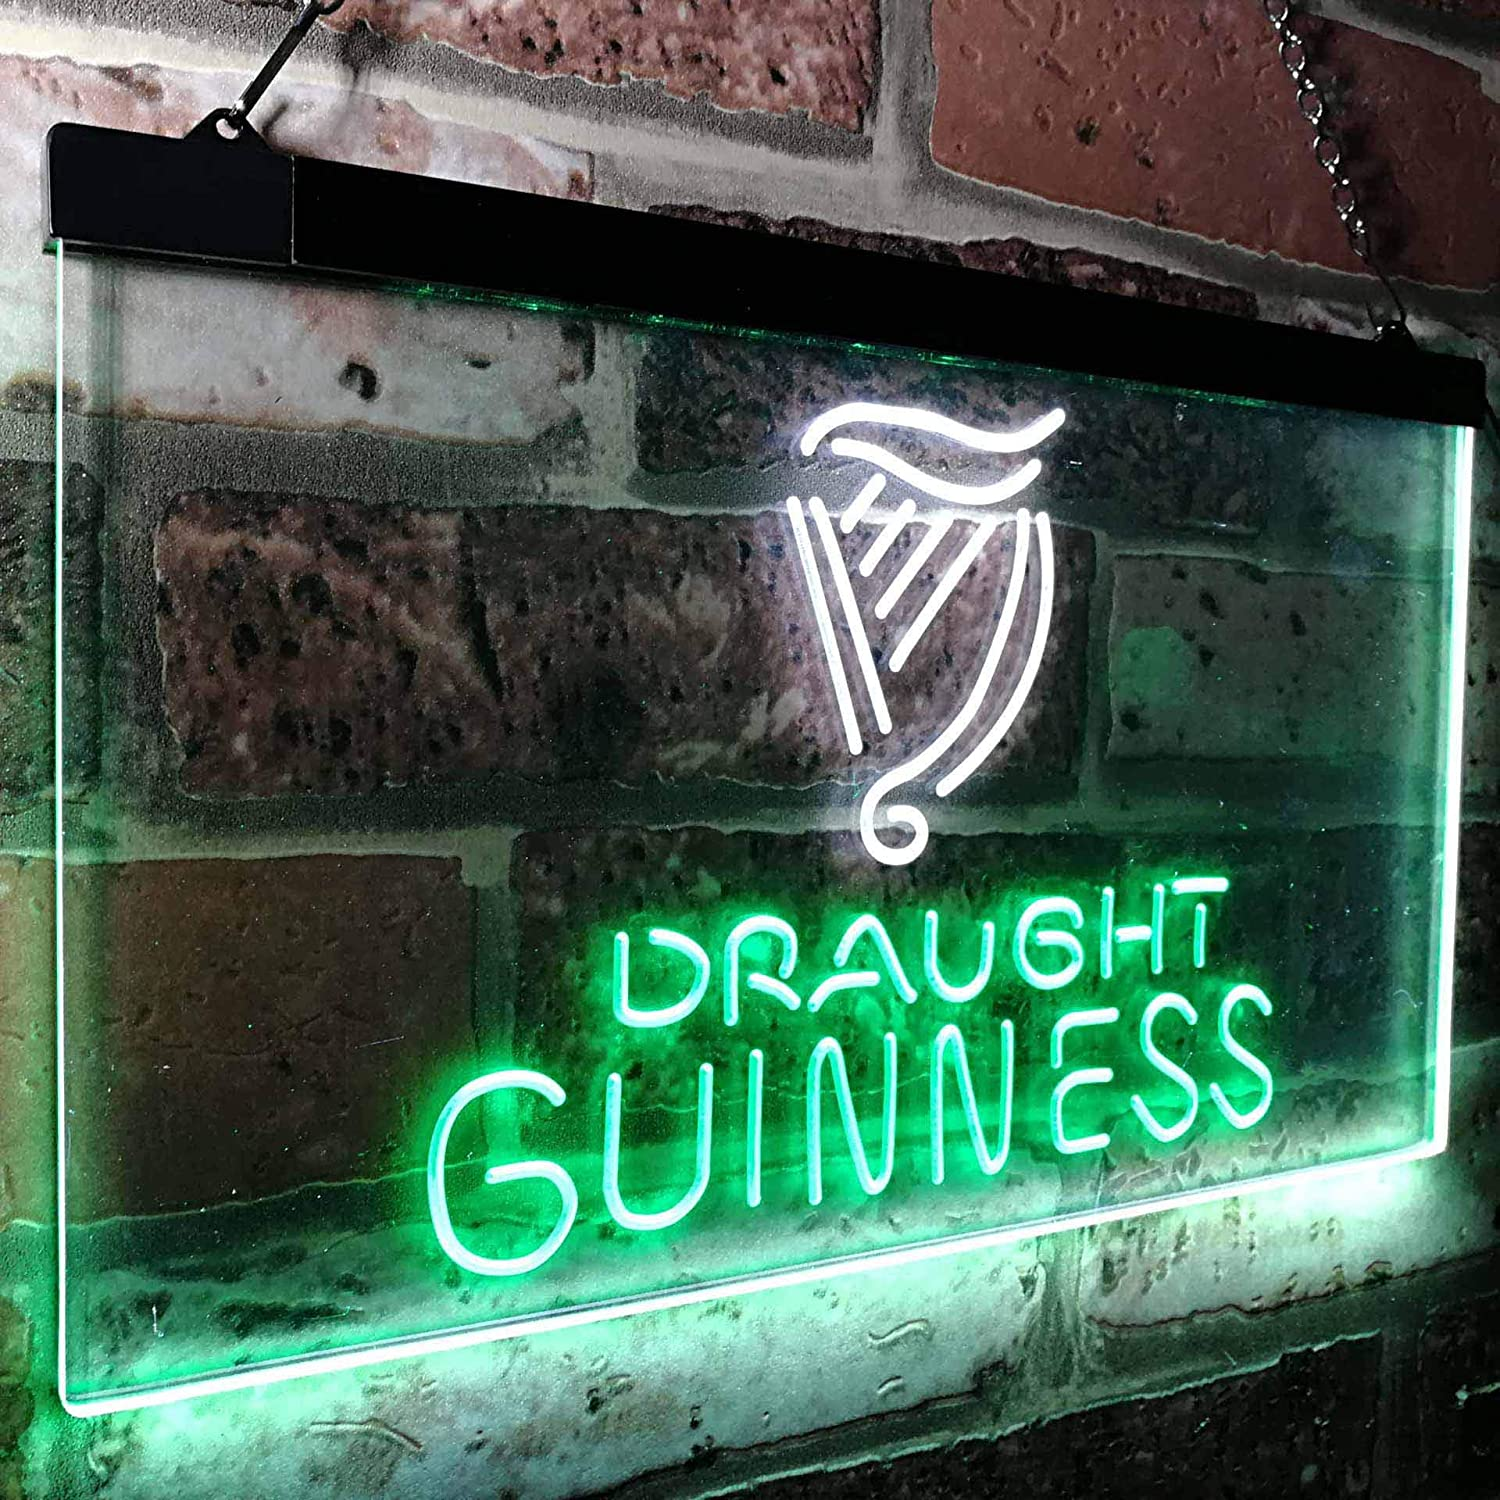 Zusme Guinness Draught on tap Beer Bar Decor Novelty LED Neon Sign Weiß + Grün W40cm x H 30cm